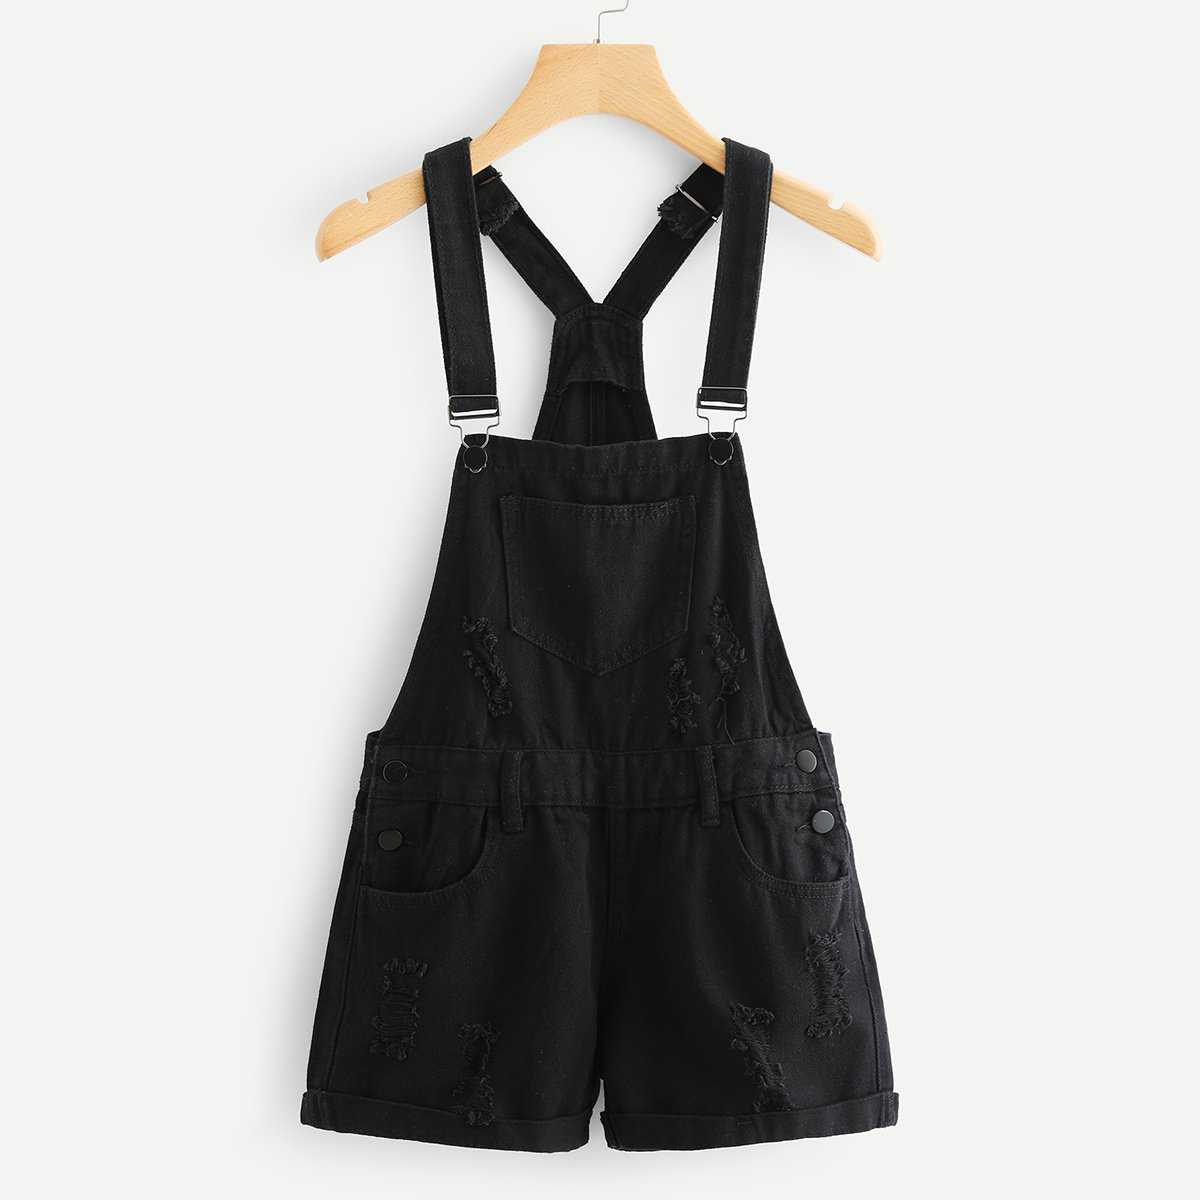 Roll Up Hem Ripped Denim Overalls in Black by ROMWE on GOOFASH